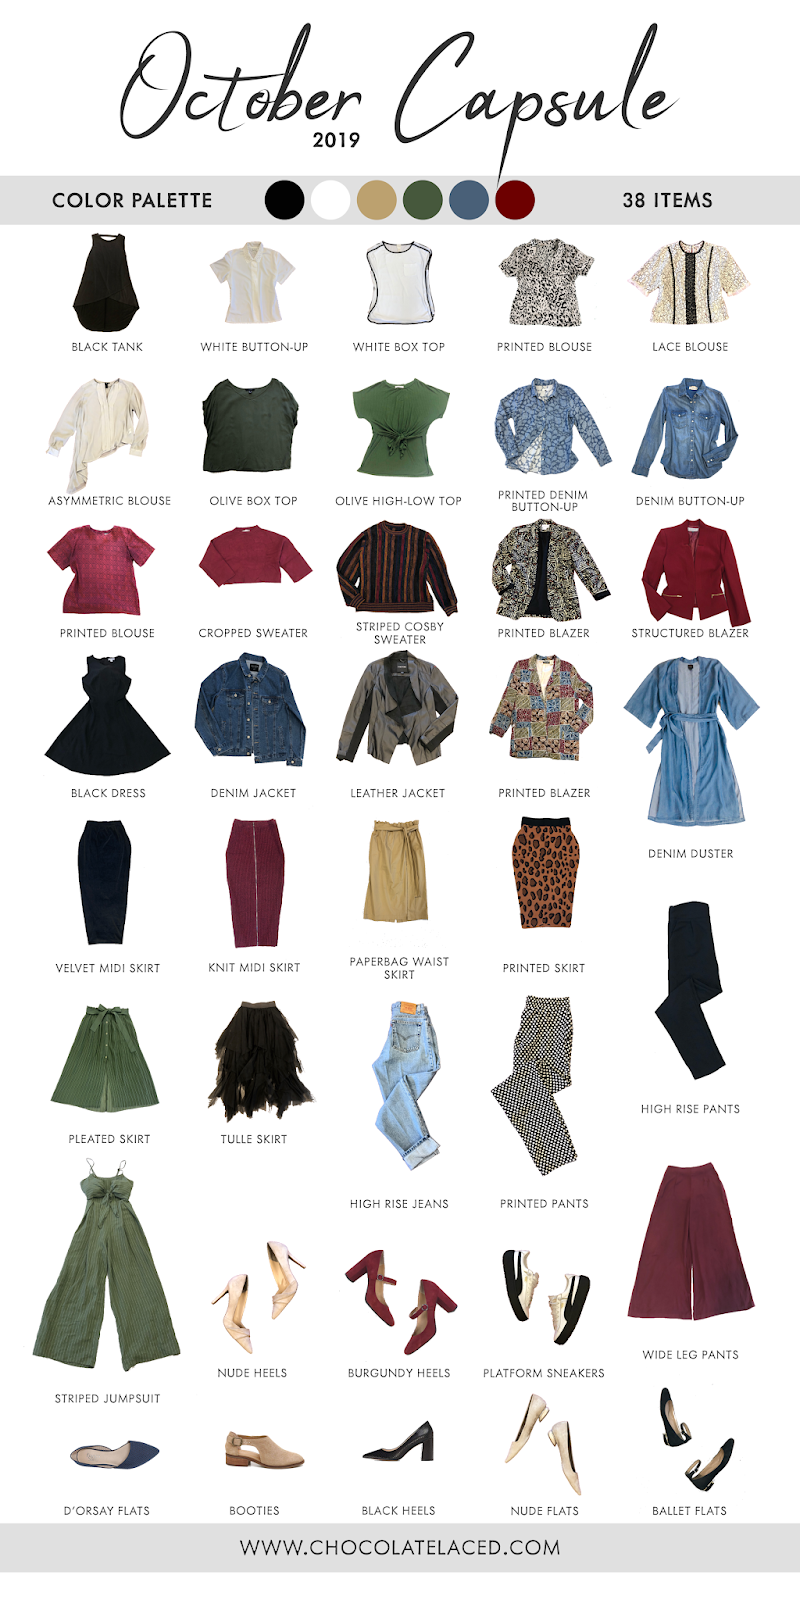 October 2019 capsule closet items